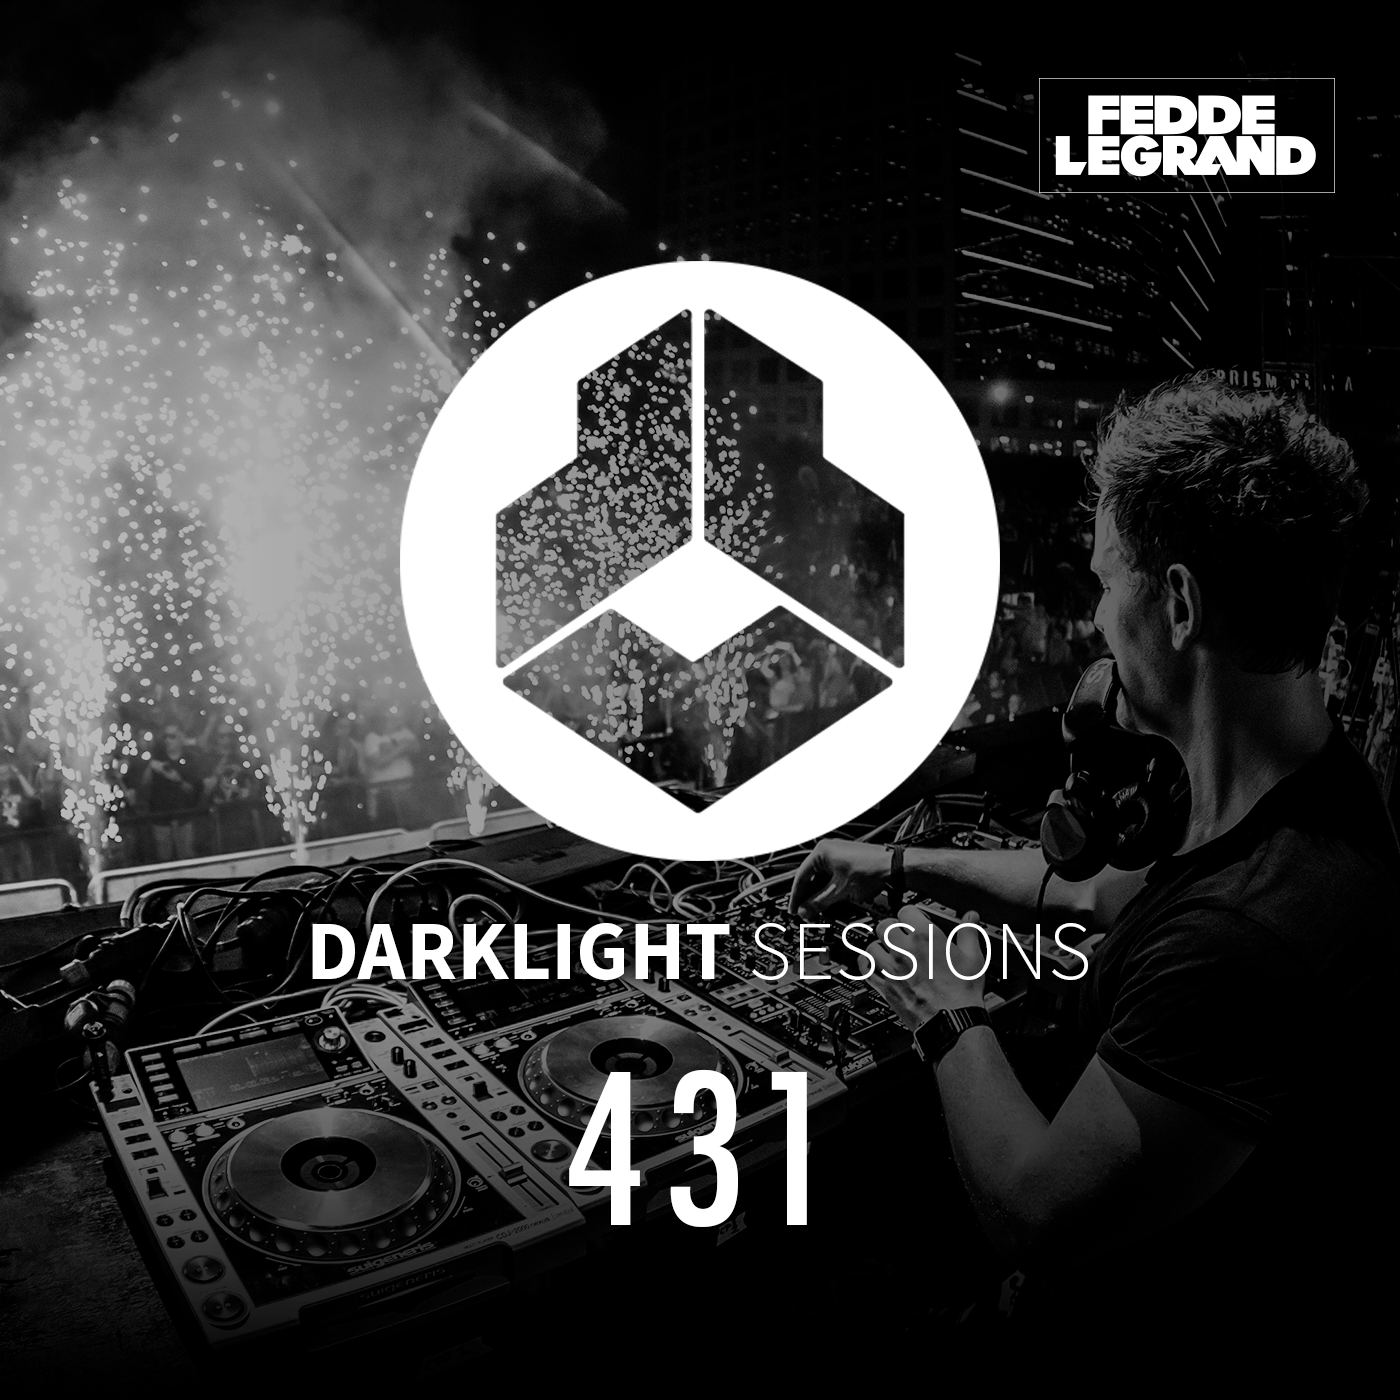 Darklight Sessions 431